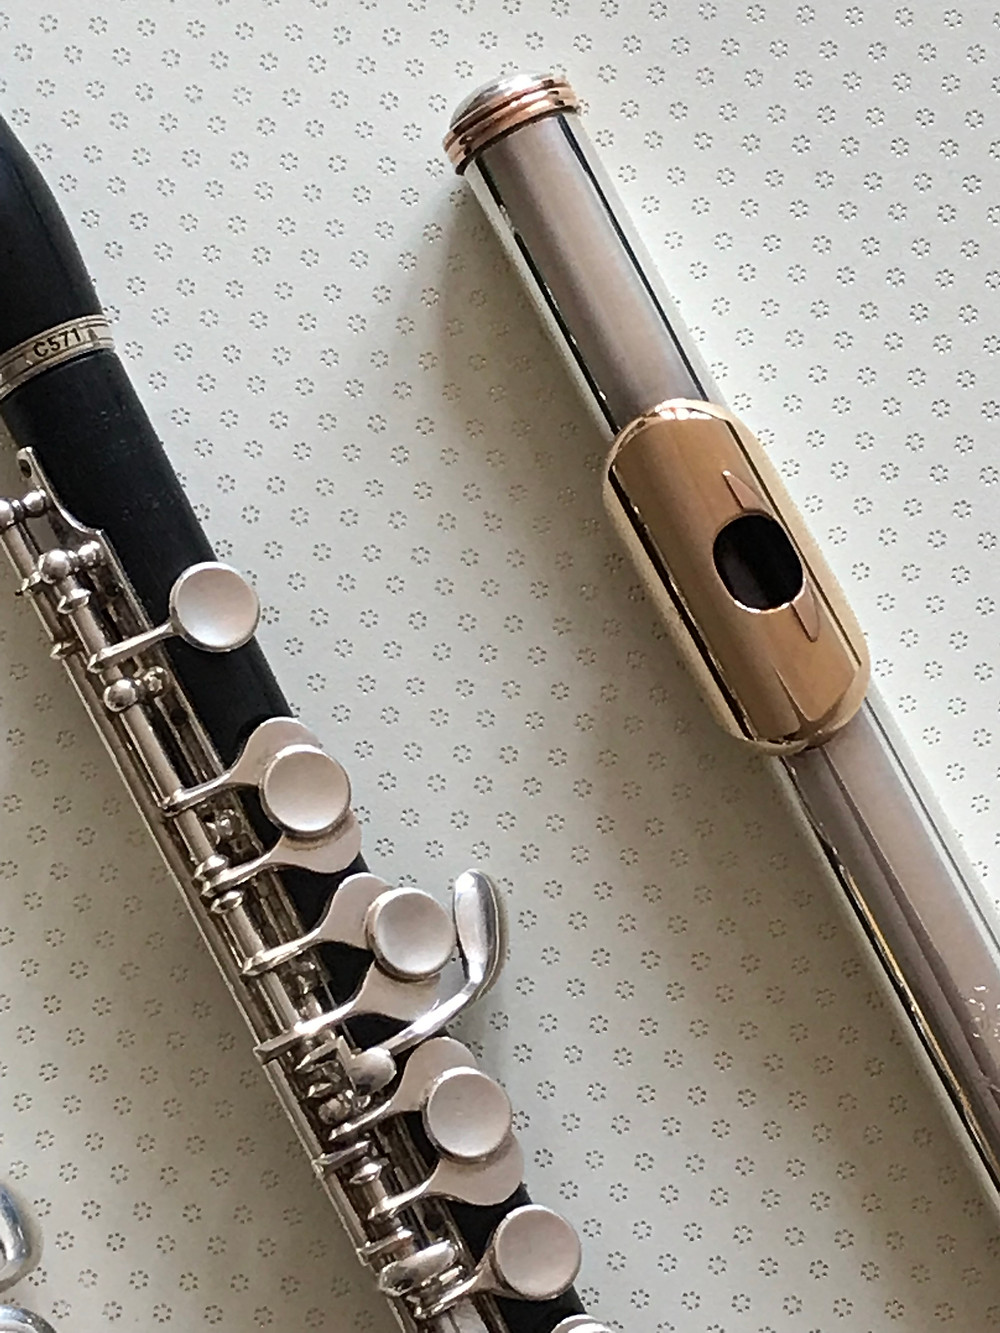 Buying a flute and piccolo